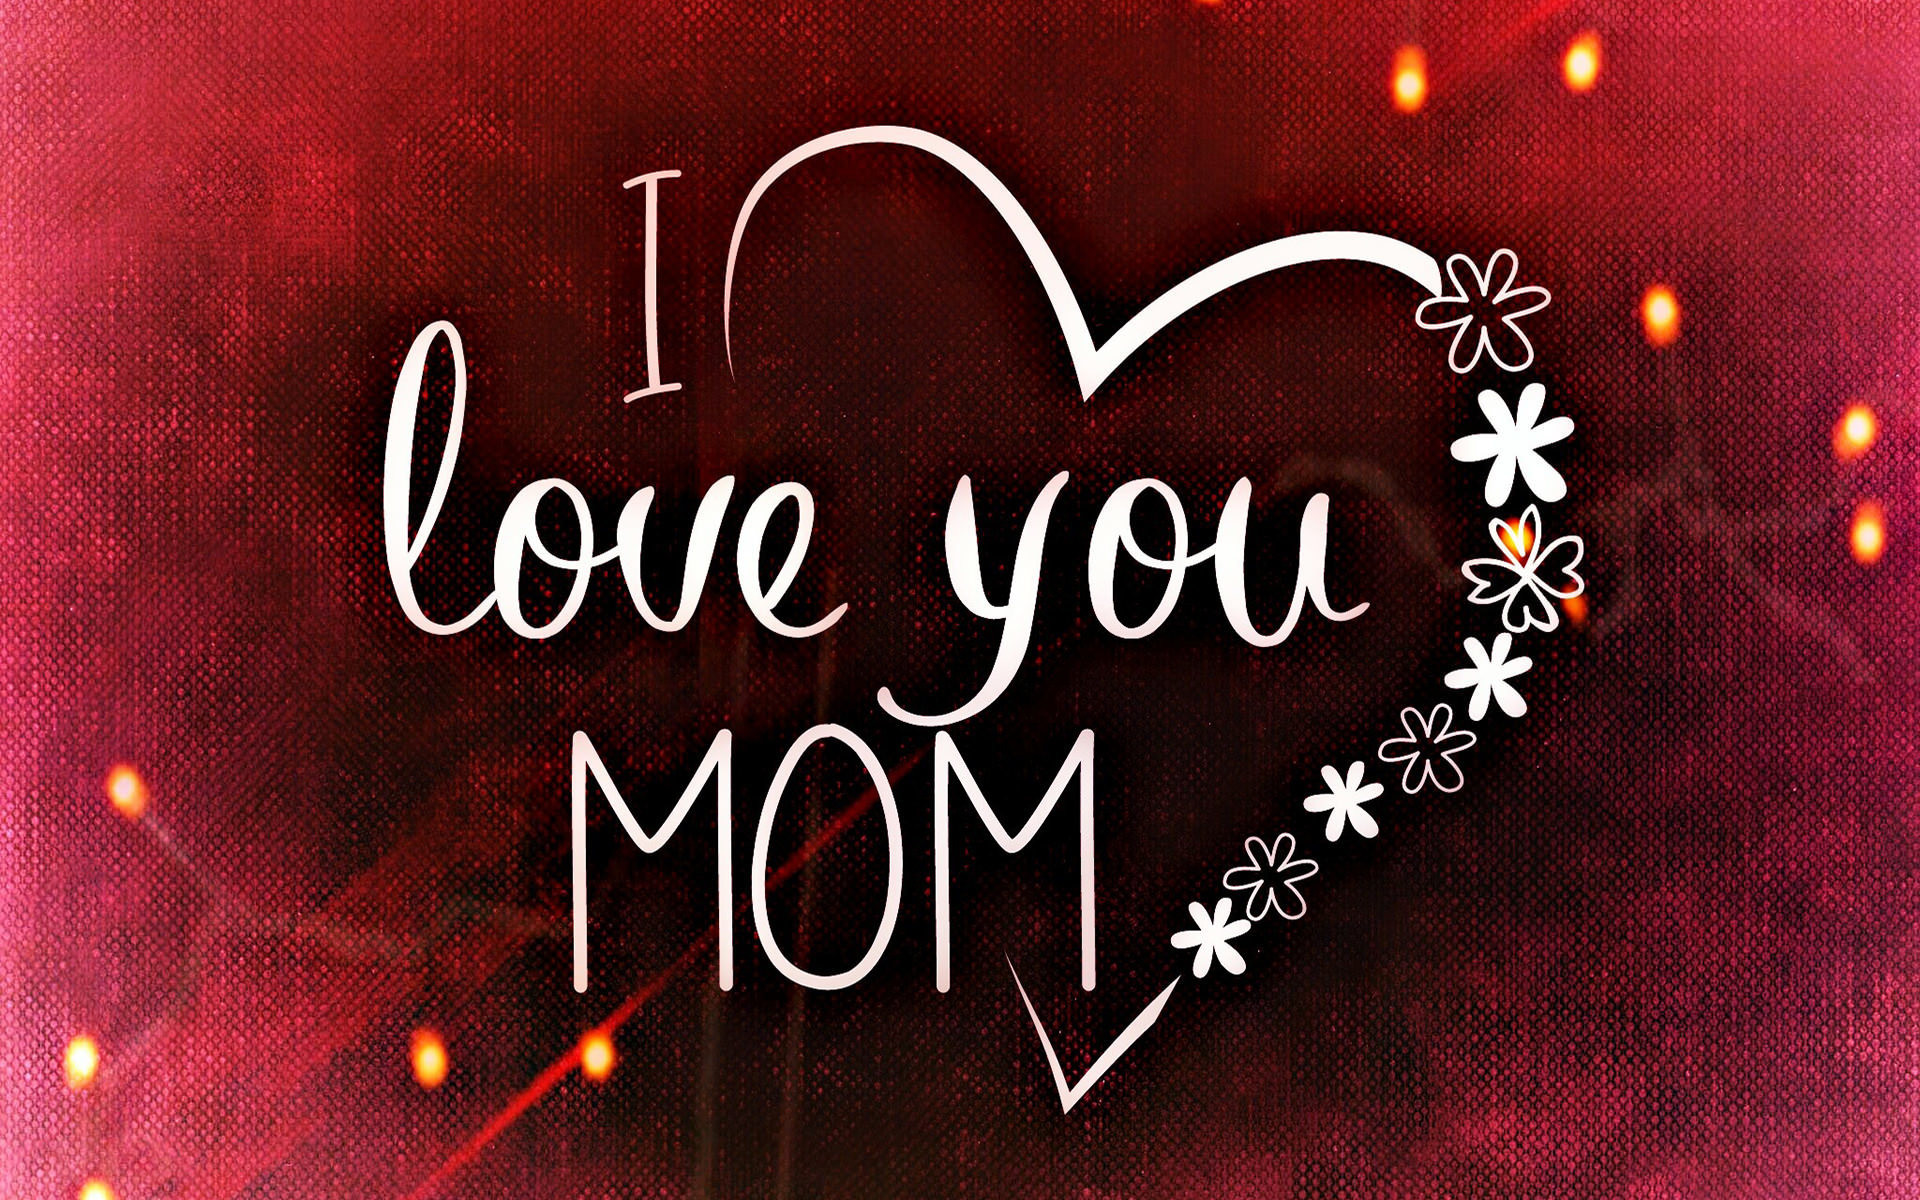 I Love You Mom Wallpaper 61 images 1920x1200